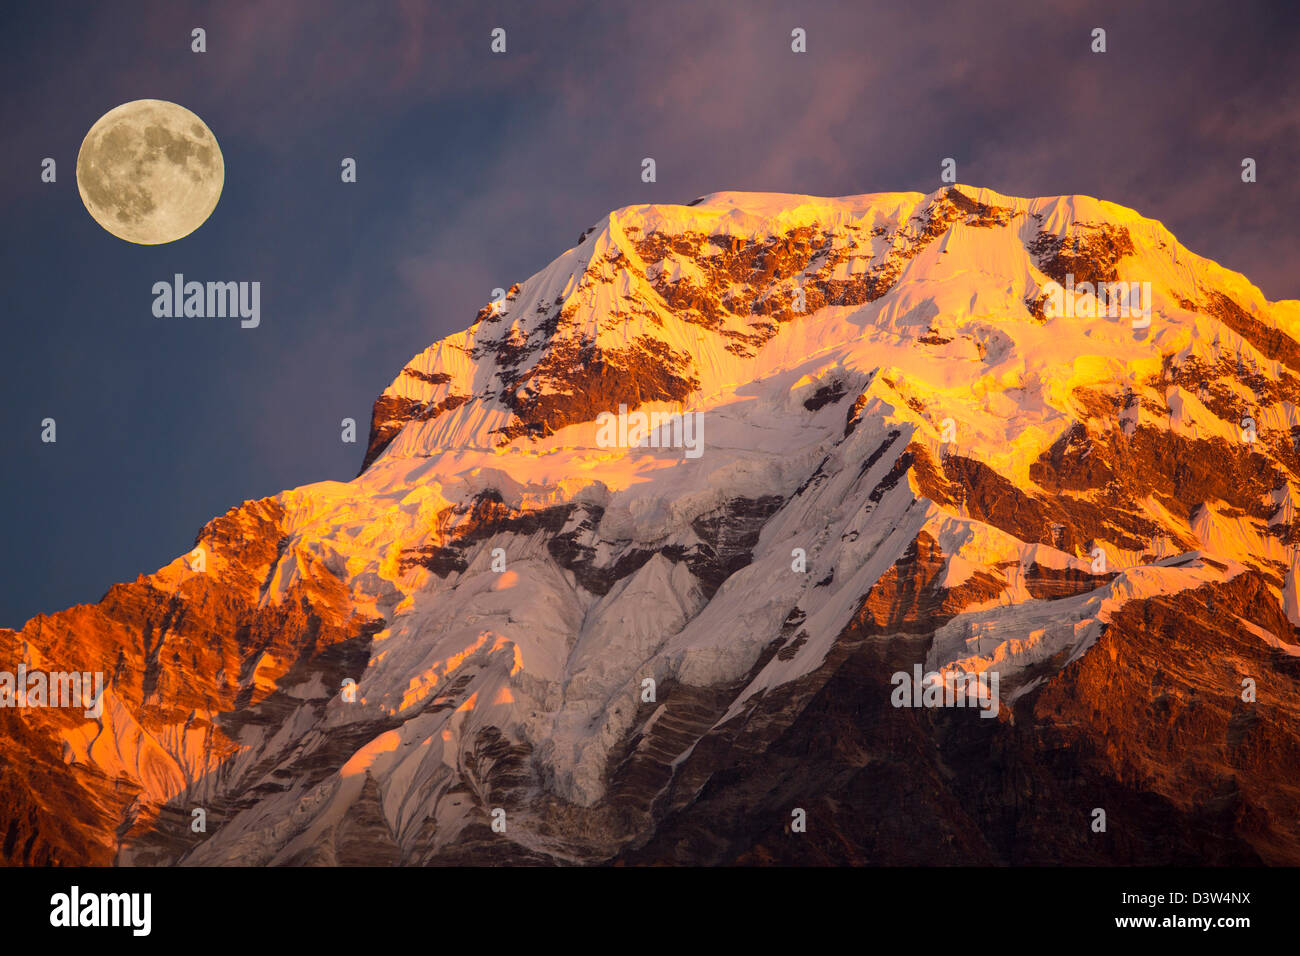 Alpenglow at sunrise on Annapurna South, Nepelese Himalayas, with a full moon. Stock Photo